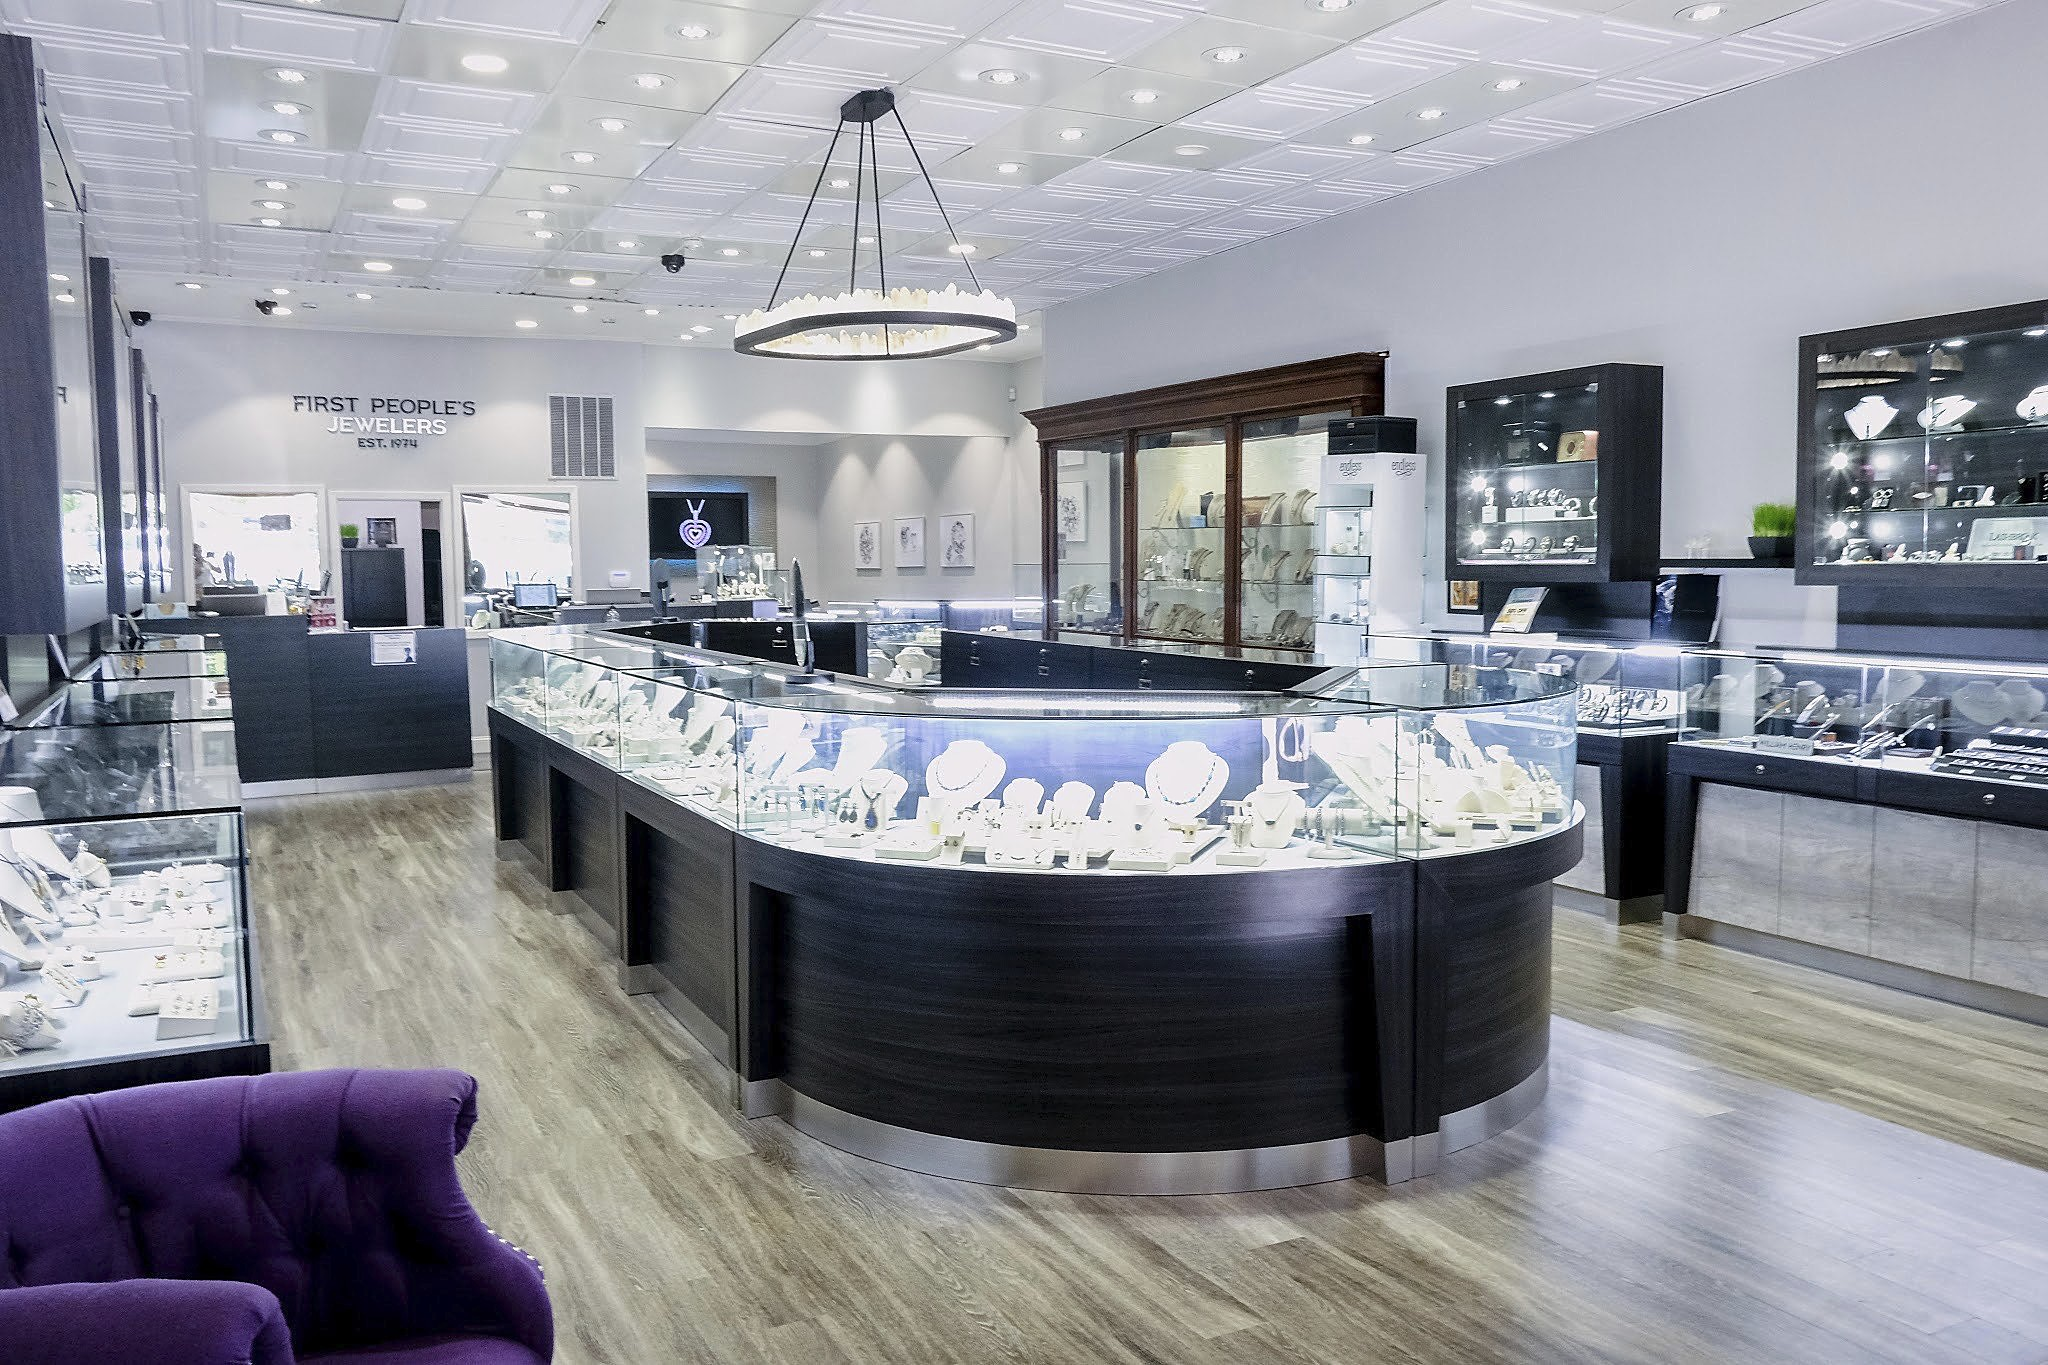 FIRST PEOPLES JEWELERS